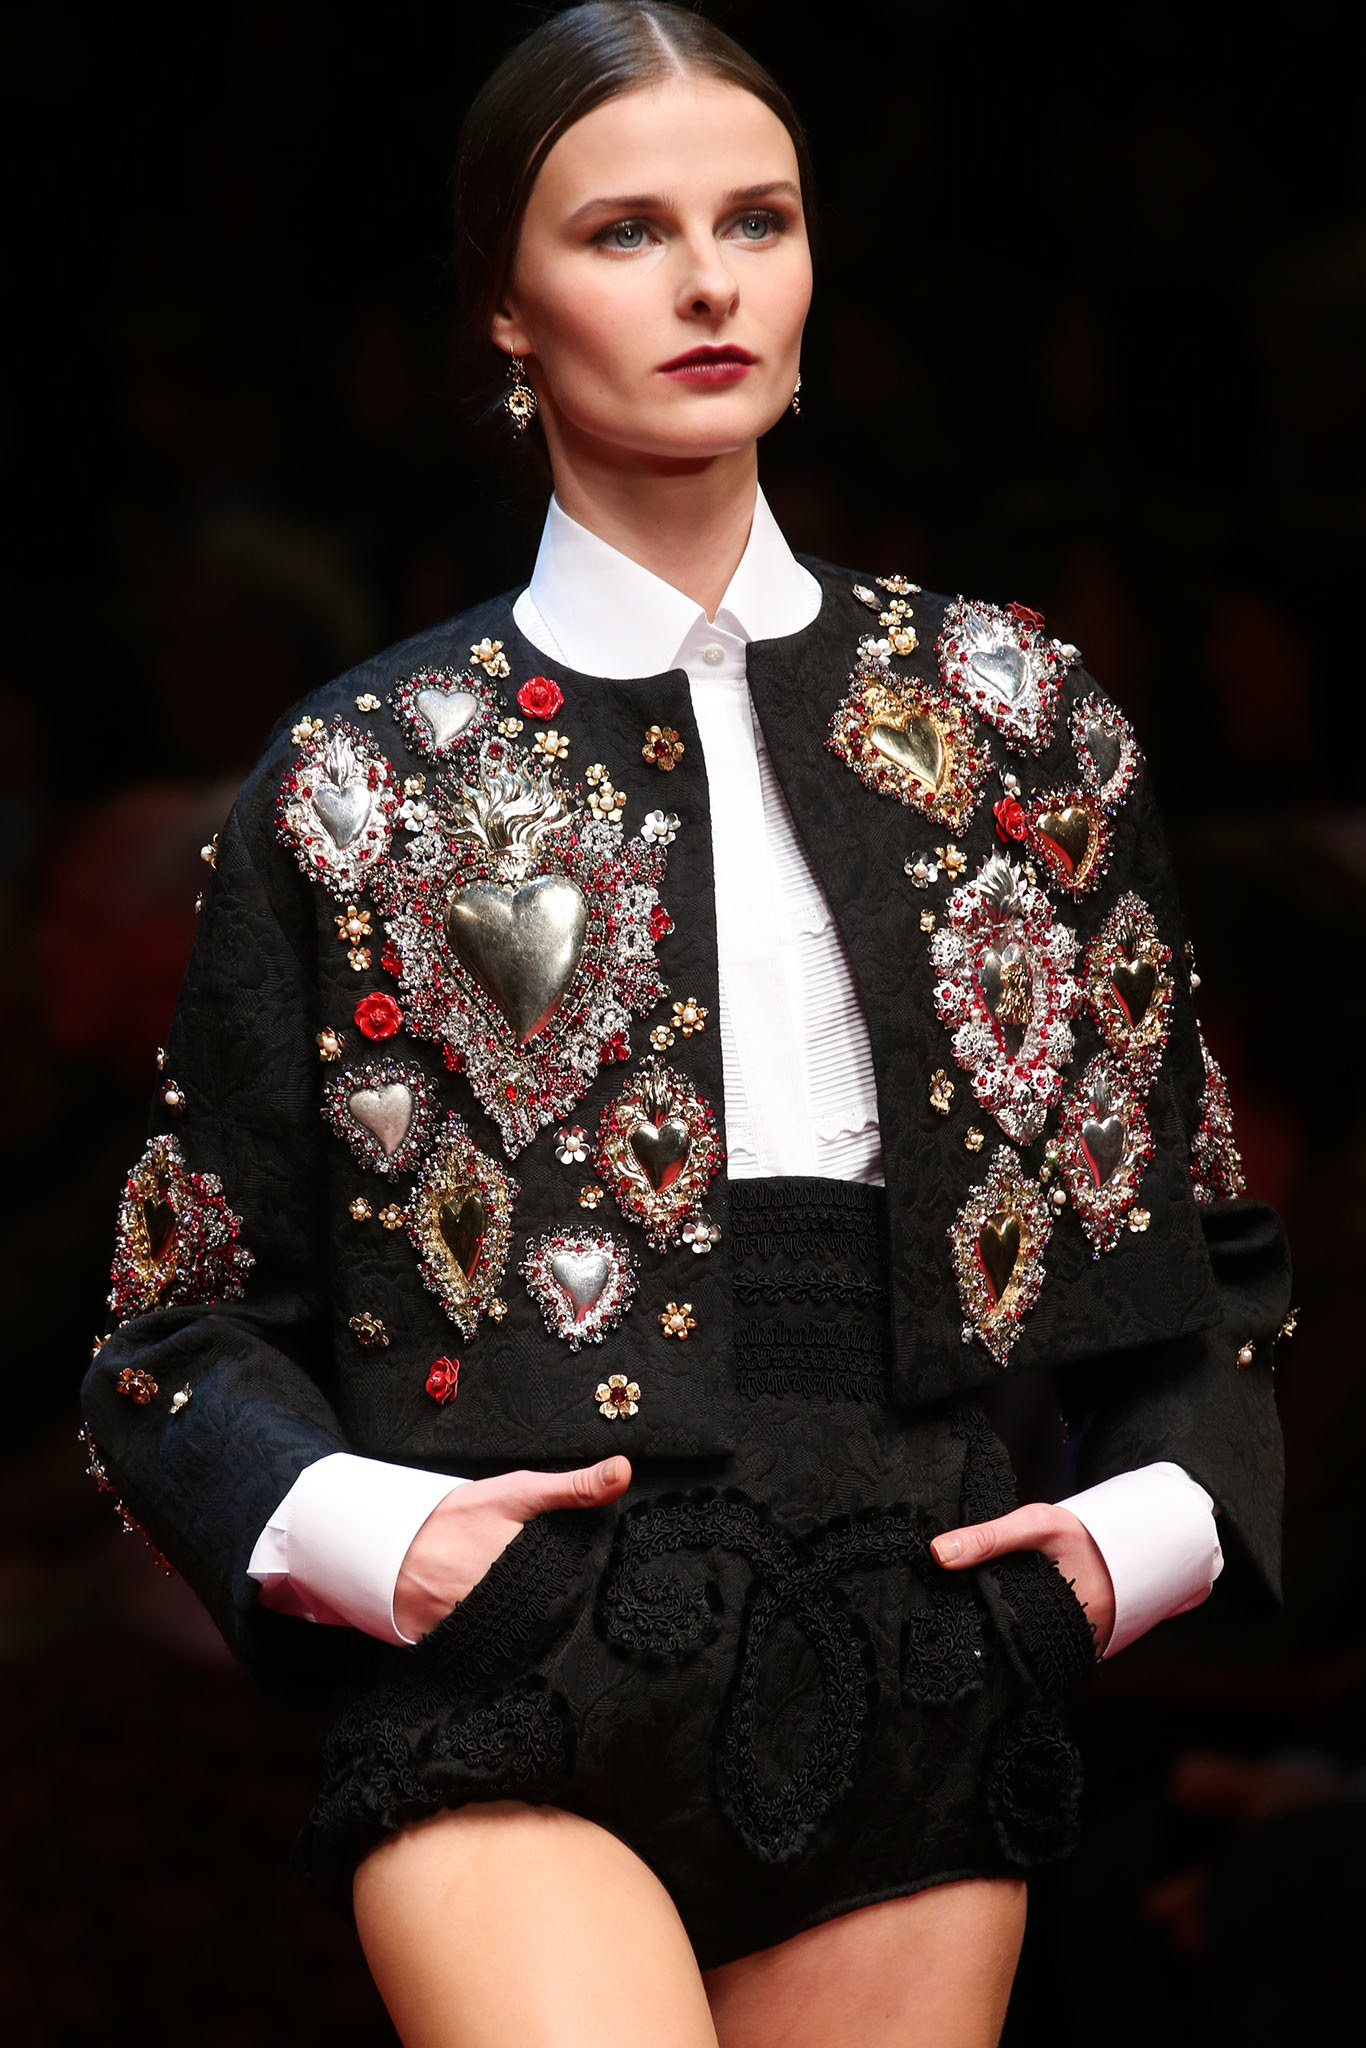 Saint Valentine's Day, fashion collection, Valentine's Day outfit ideas, street style, trends 2019, Luella Spring 2010 collection, Dolce & Gabbana's Spring 2015, Saint Laurent Fall 2016, Maison Margiela Couture Fall 2014, heart print dress, Valentine's Day dress, Versace Pre-Fall 2019